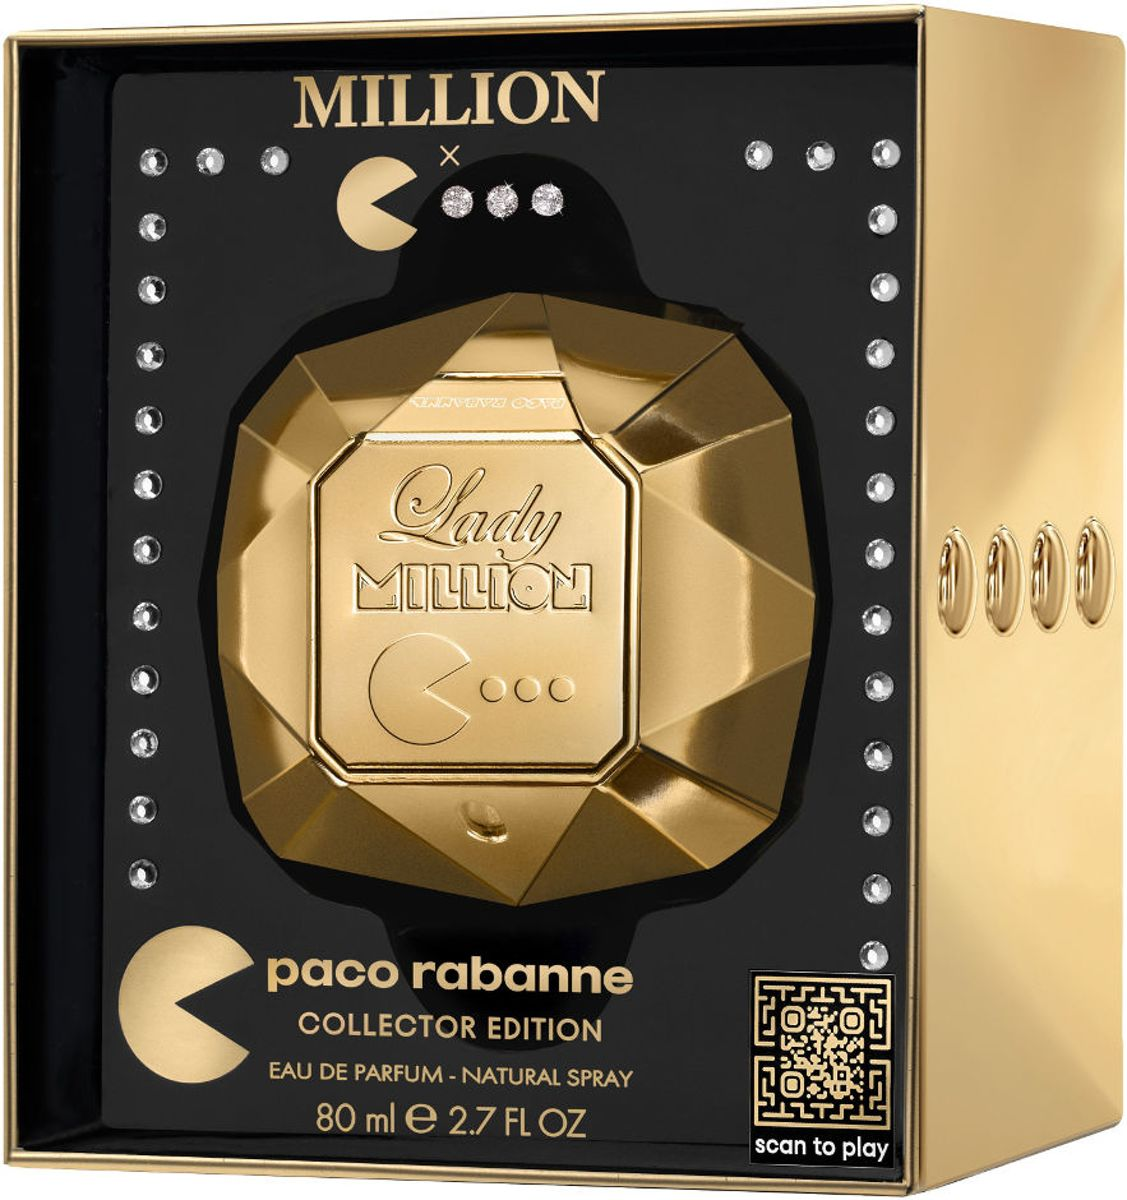 Paco Rabanne Lady Million 80ml EDP Spray Pacman Edition